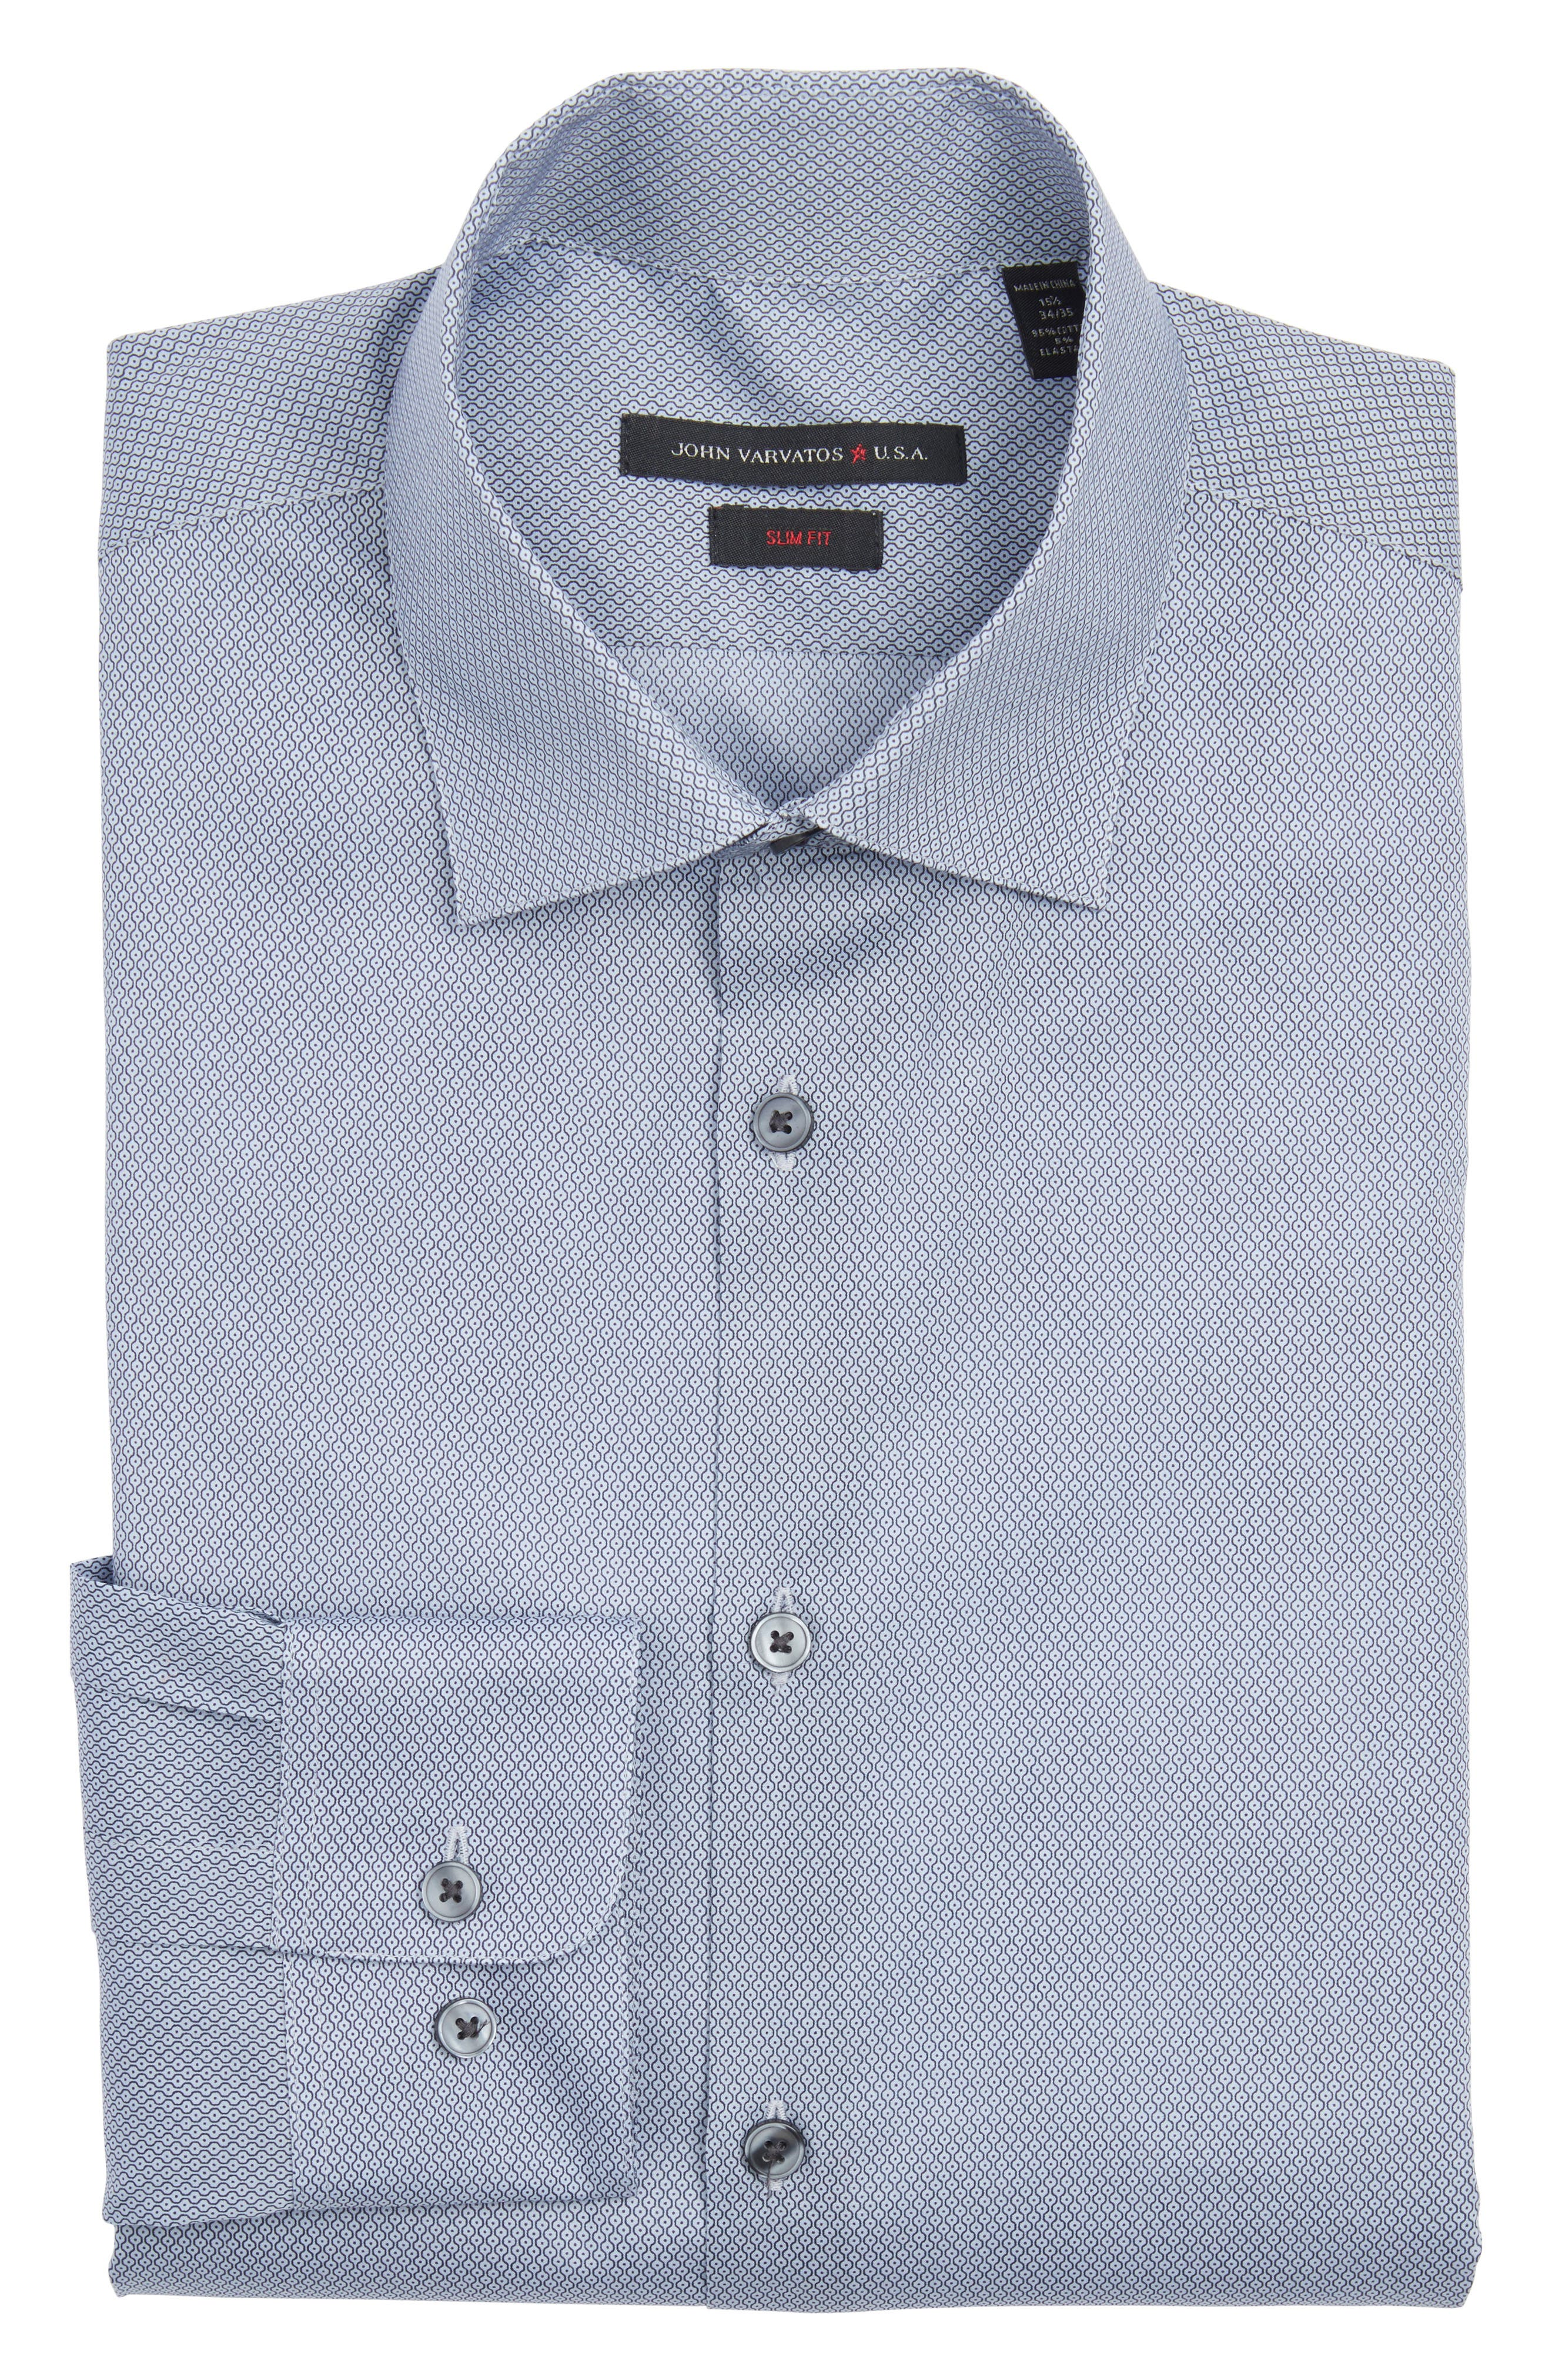 Slim Fit Geometric Dress Shirt,                         Main,                         color, Navy